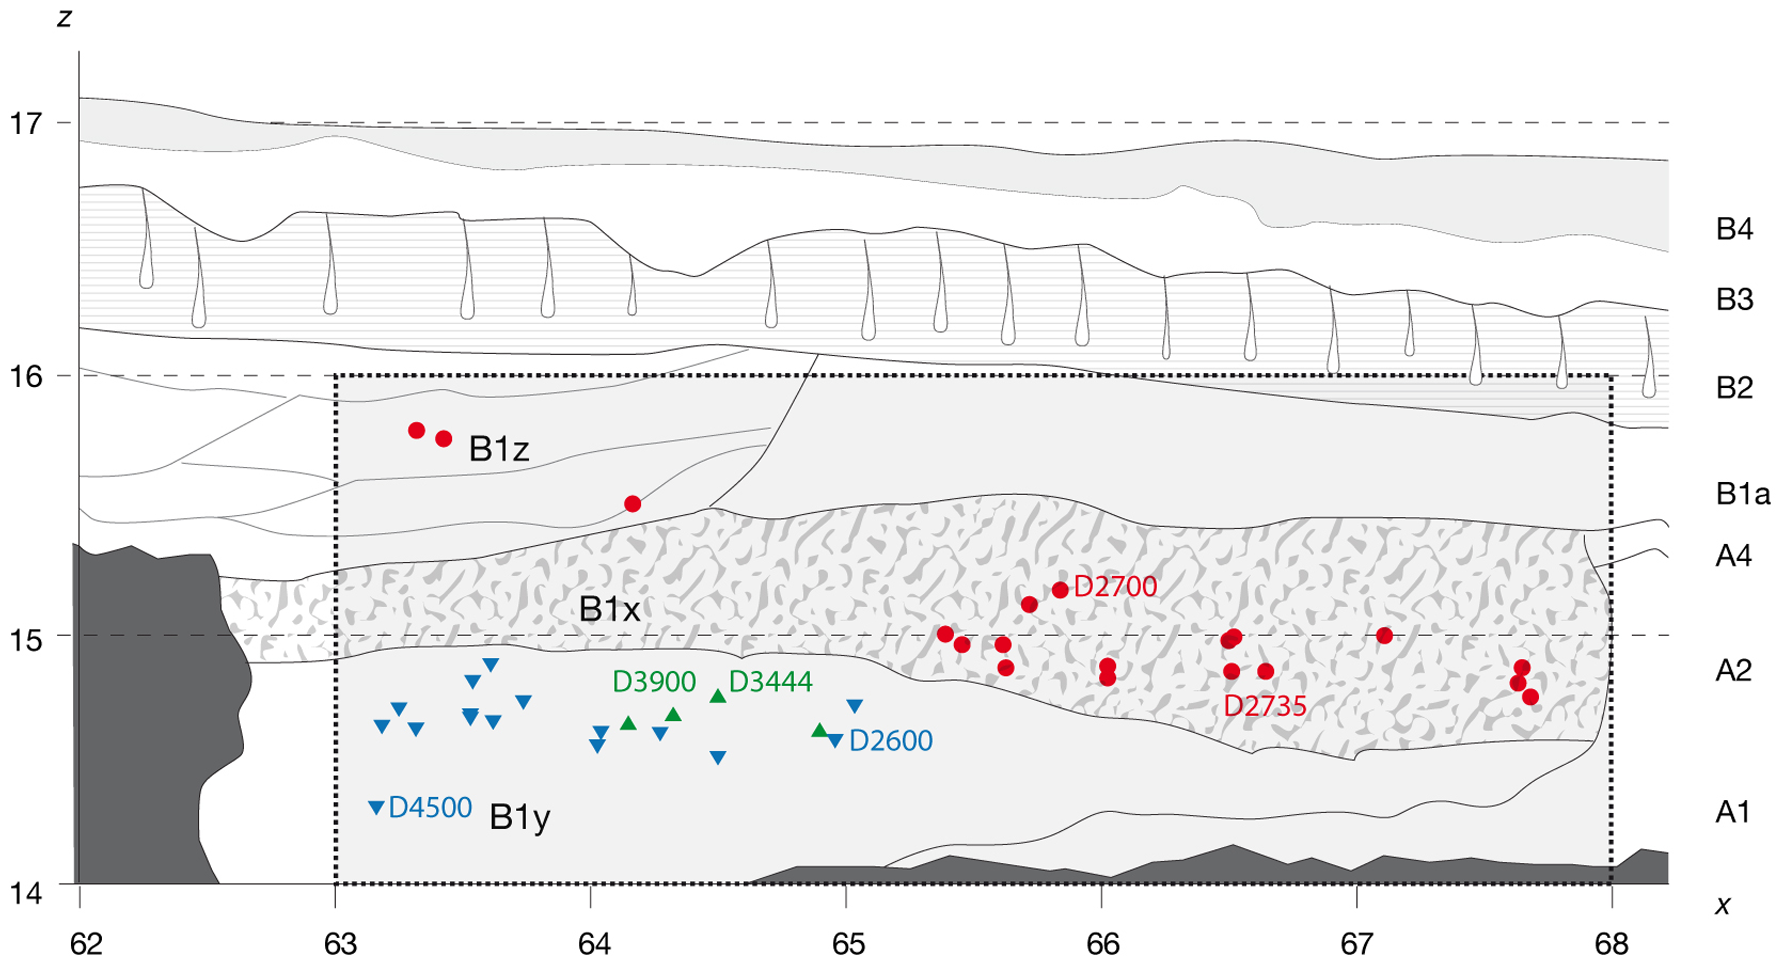 Figure 2 Projected stratigraphic location of the main hominin remains recovered from Block 2.